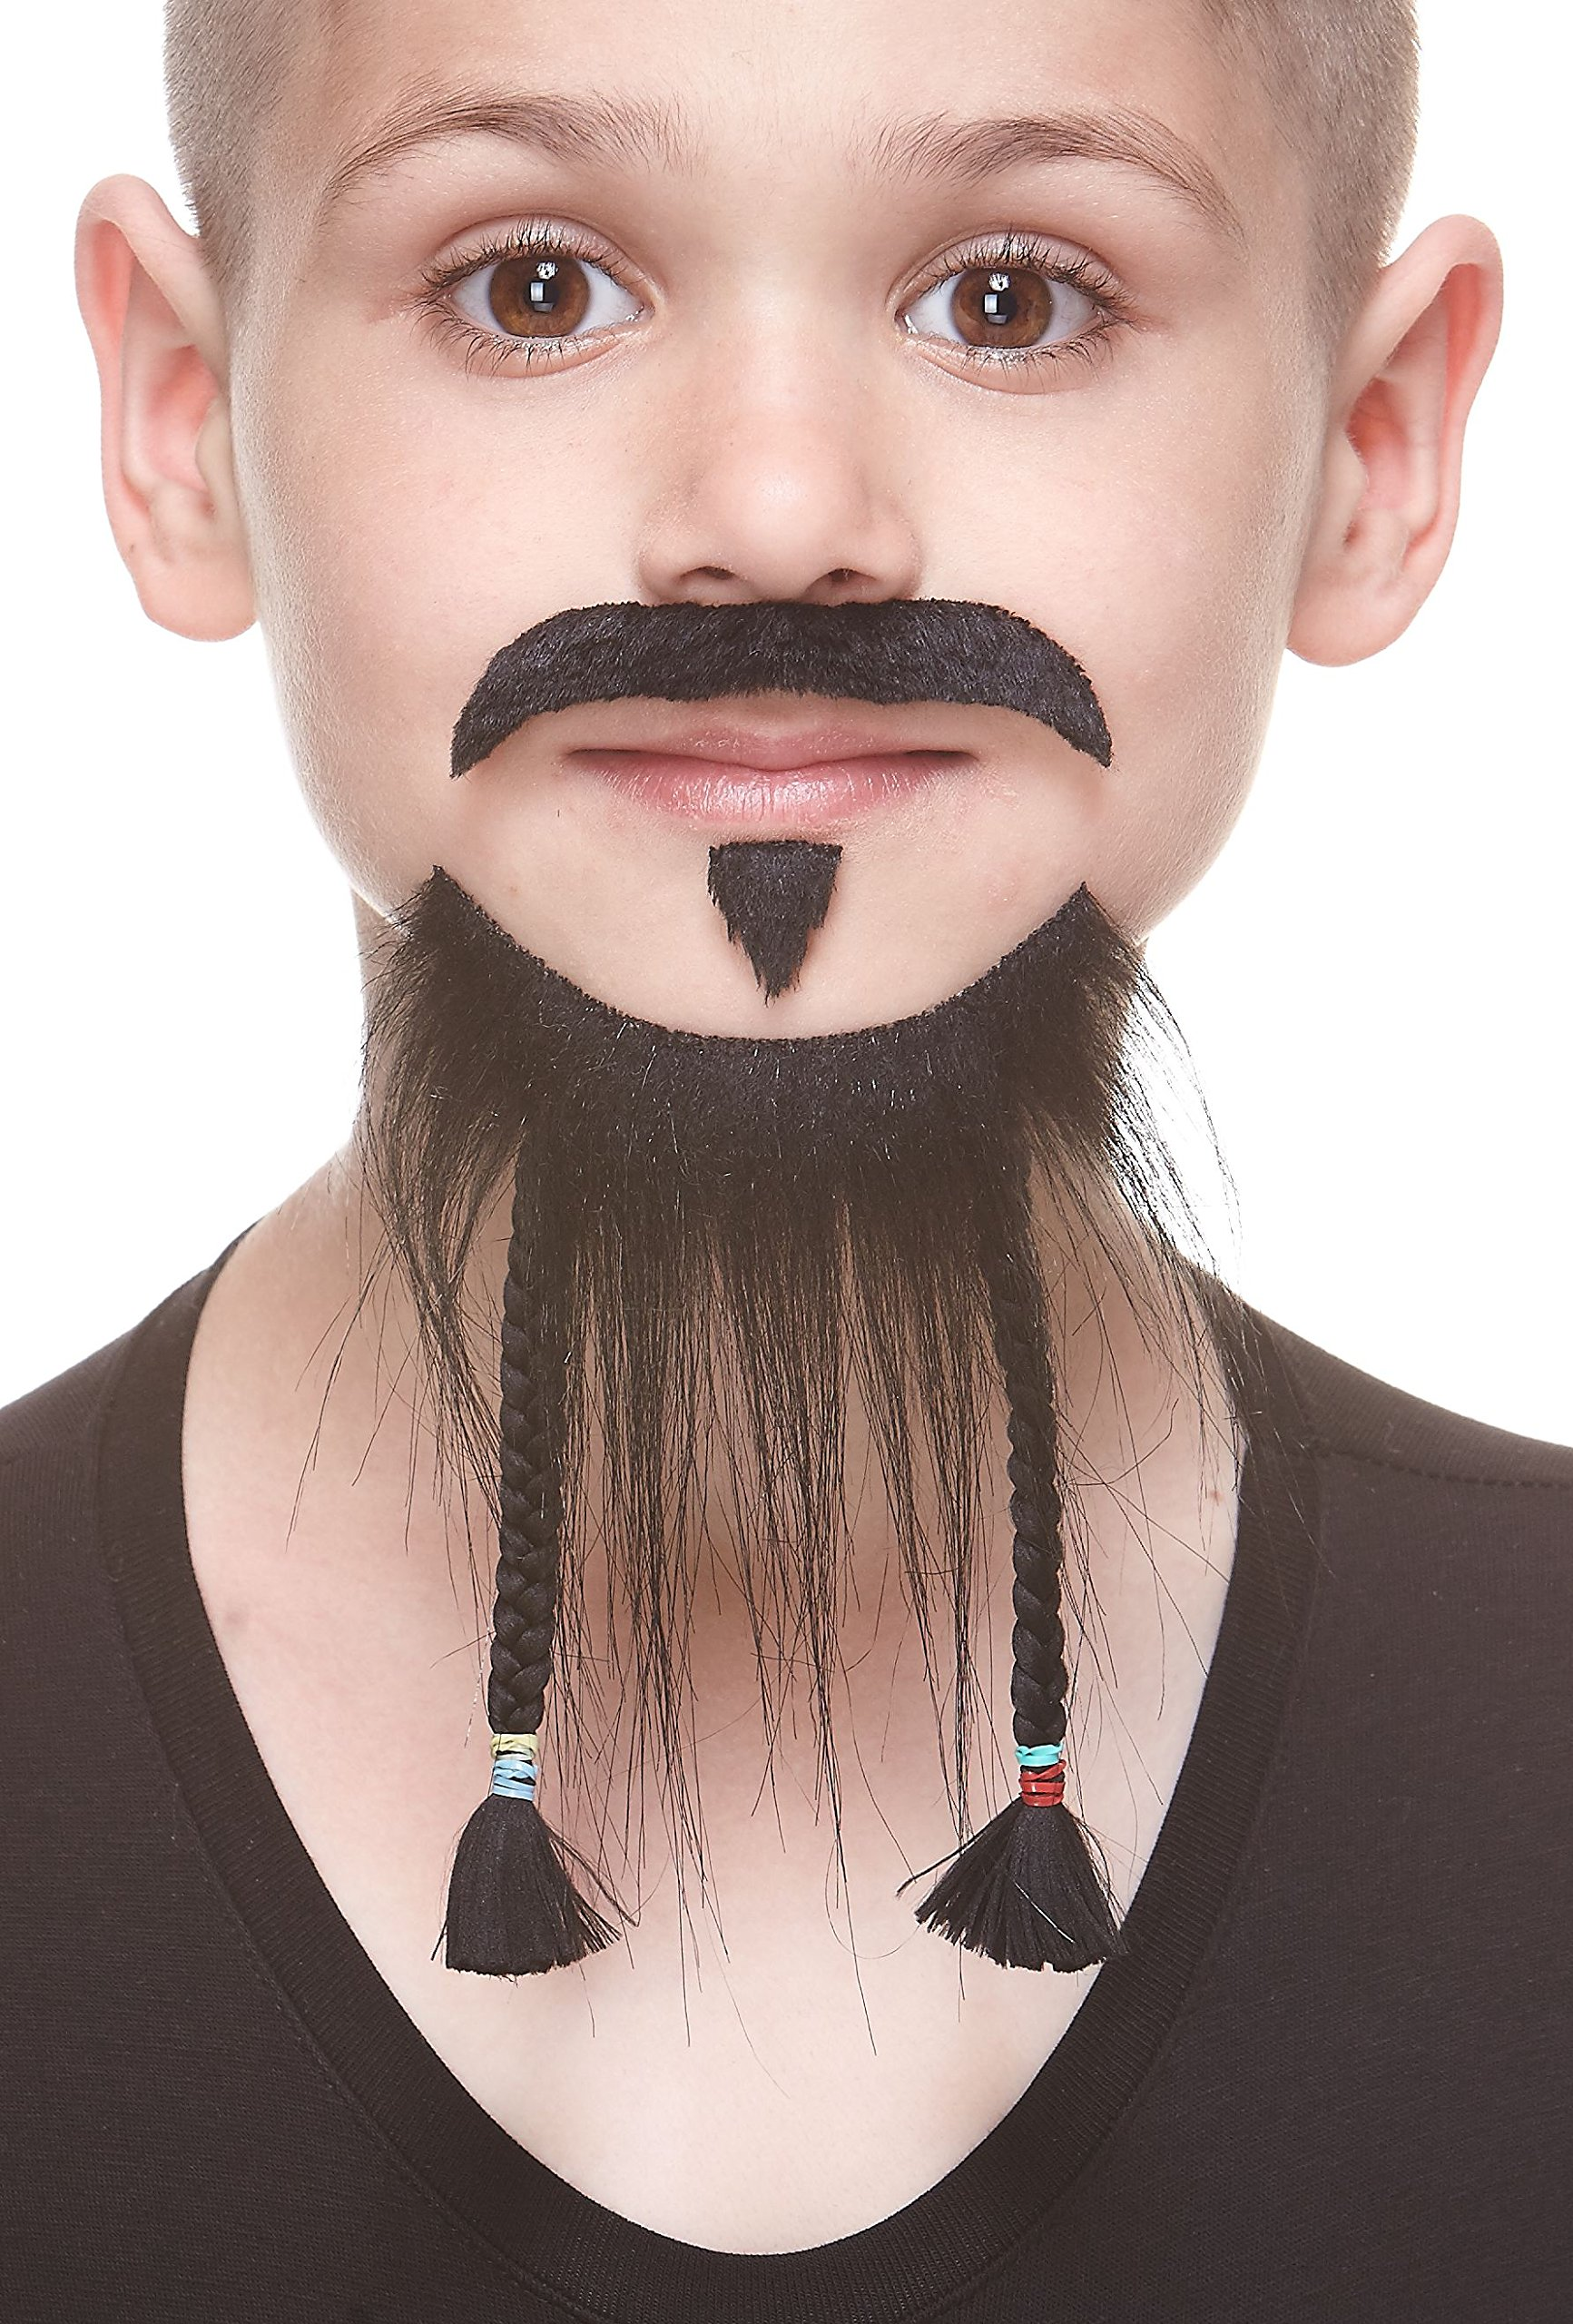 Mustaches Self Adhesive, Novelty, Fake, Small, Braided Pirate Beard, and Soul Patch, Black Color